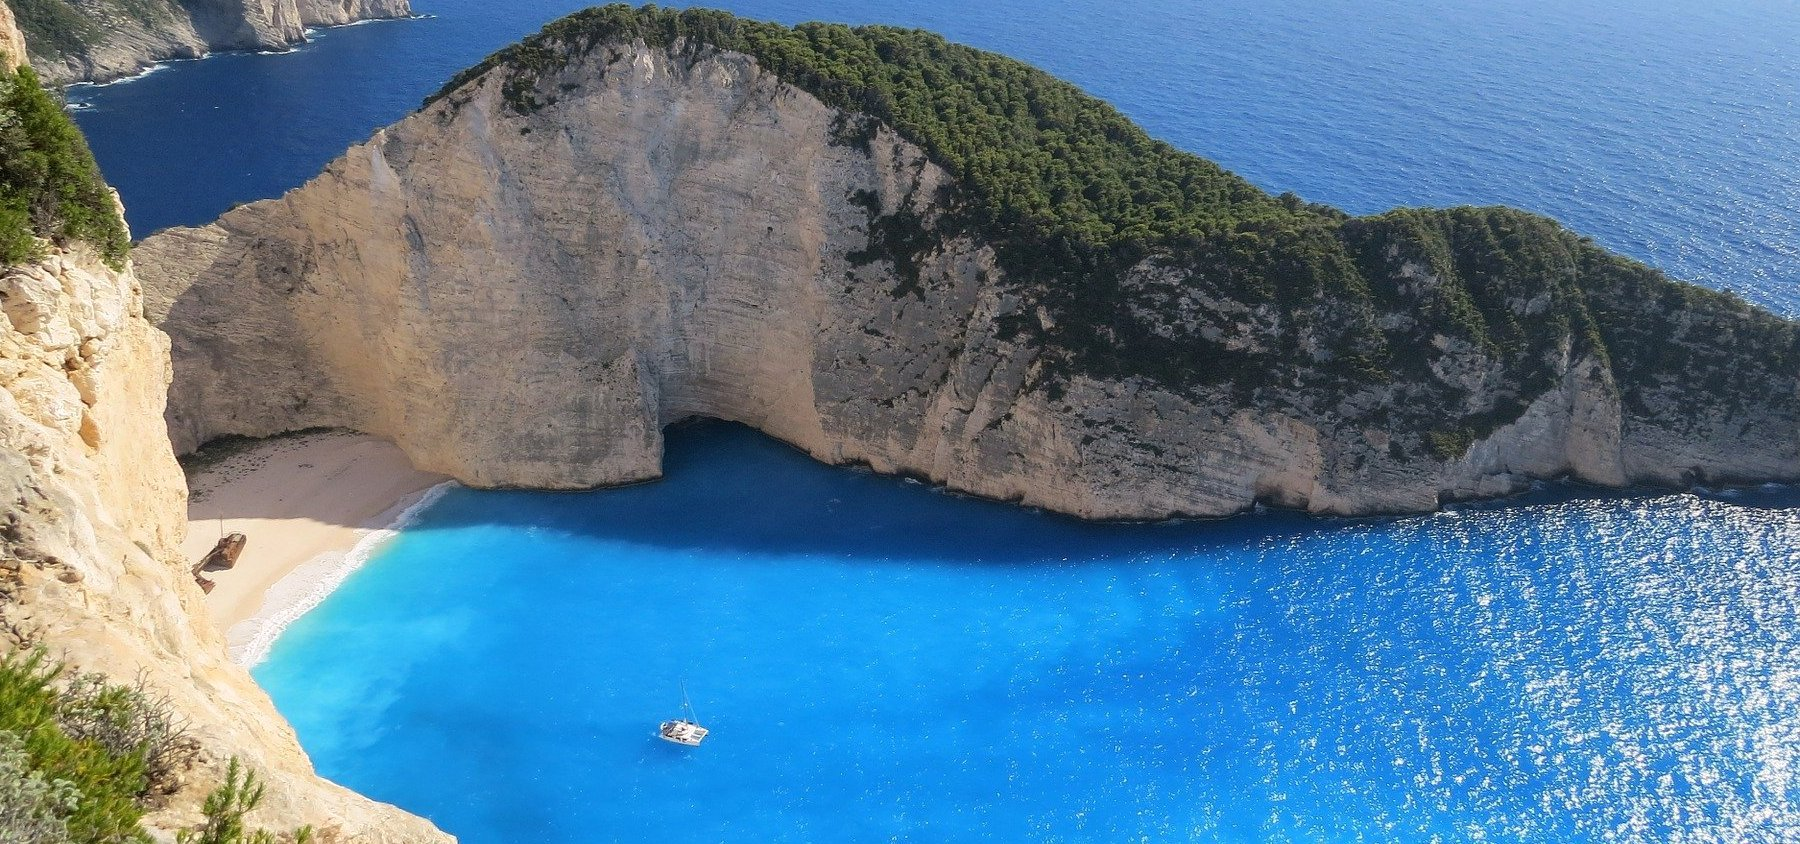 Zakynthos - Zante - shipwreck - Atlantis Travel Agency - Tours in Greece - Greek travel packages